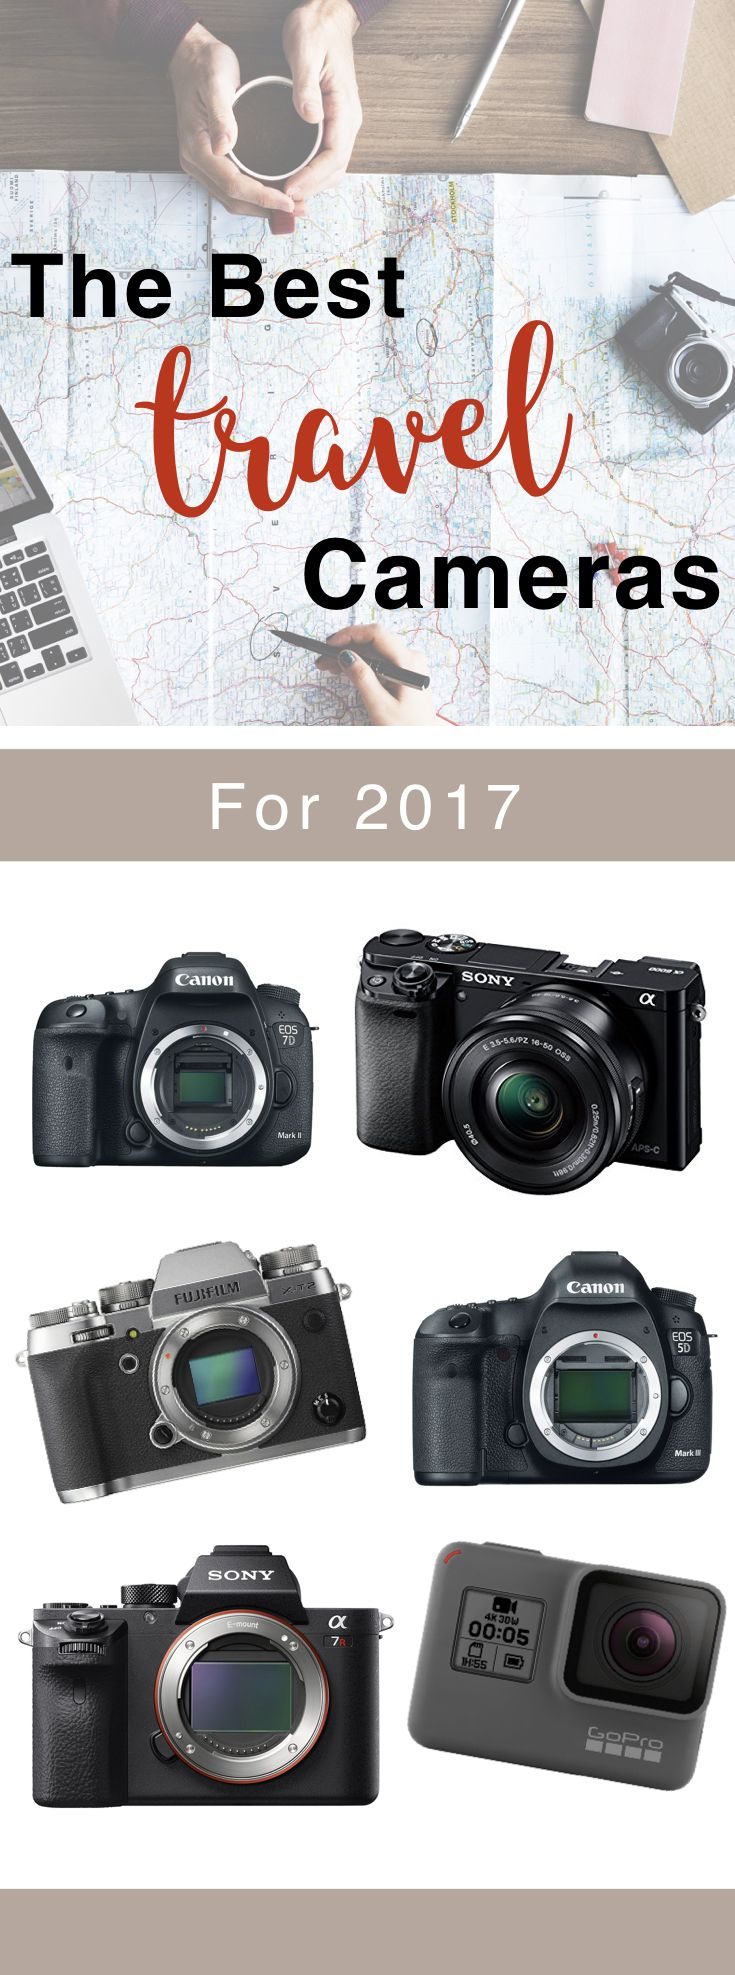 The Best Travel Cameras for 2017. The best cameras for Travel Bloggers and Travelers.